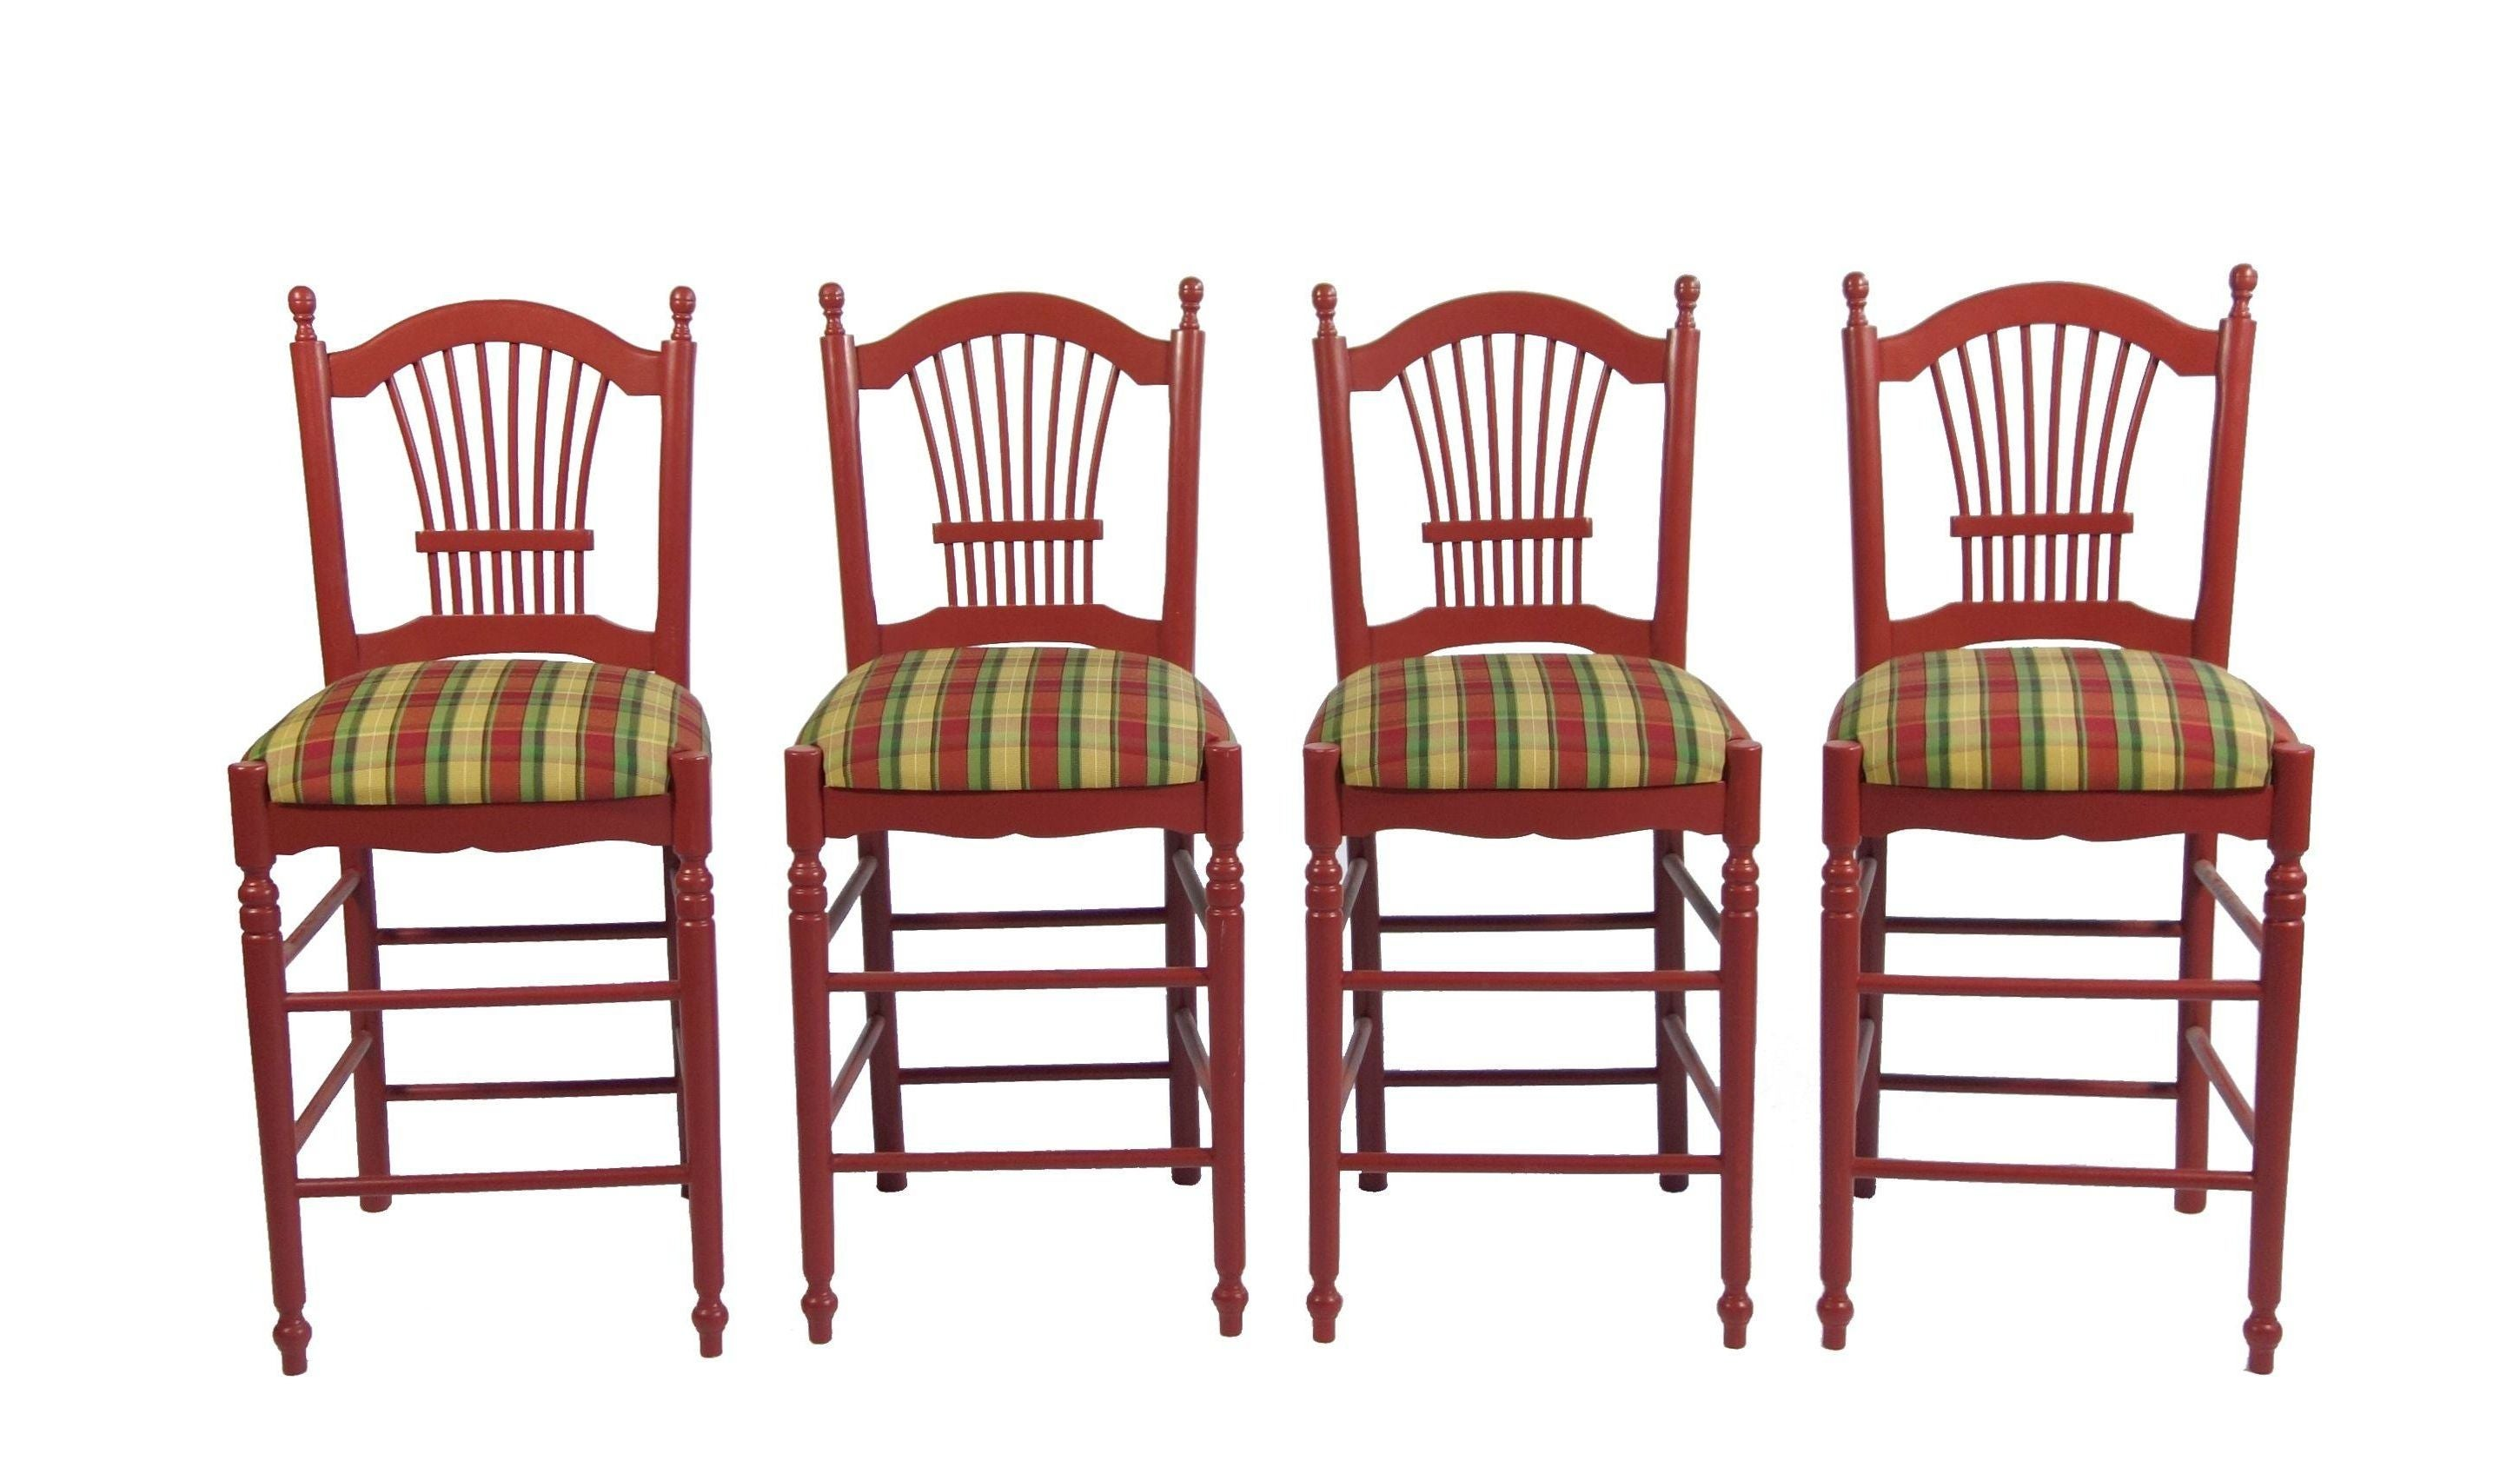 Red Bar Stools With Gingham Upholstery Set Of 4 Chairish